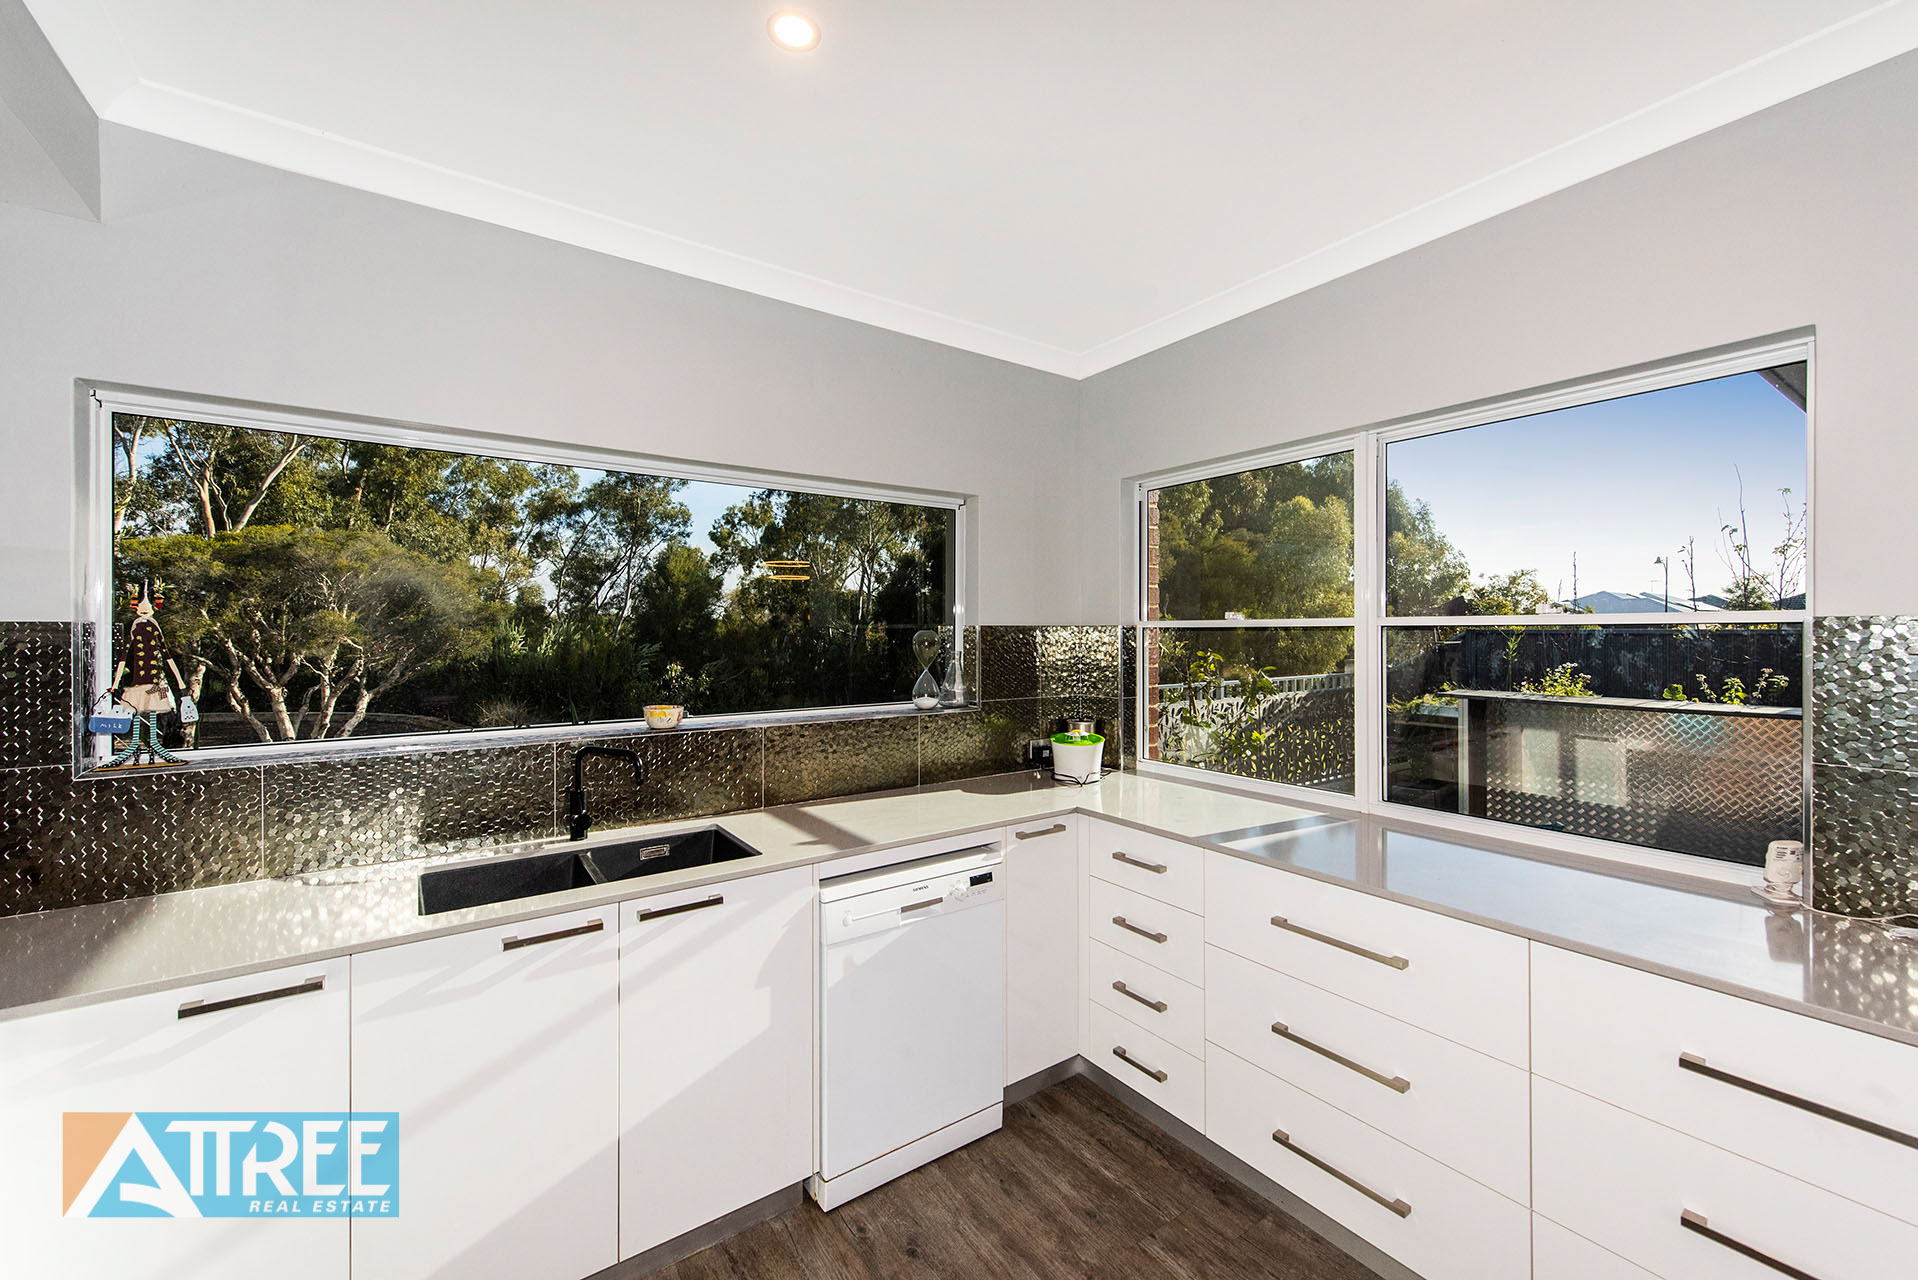 Property for sale in HARRISDALE, 9 Gleeson Way : Attree Real Estate